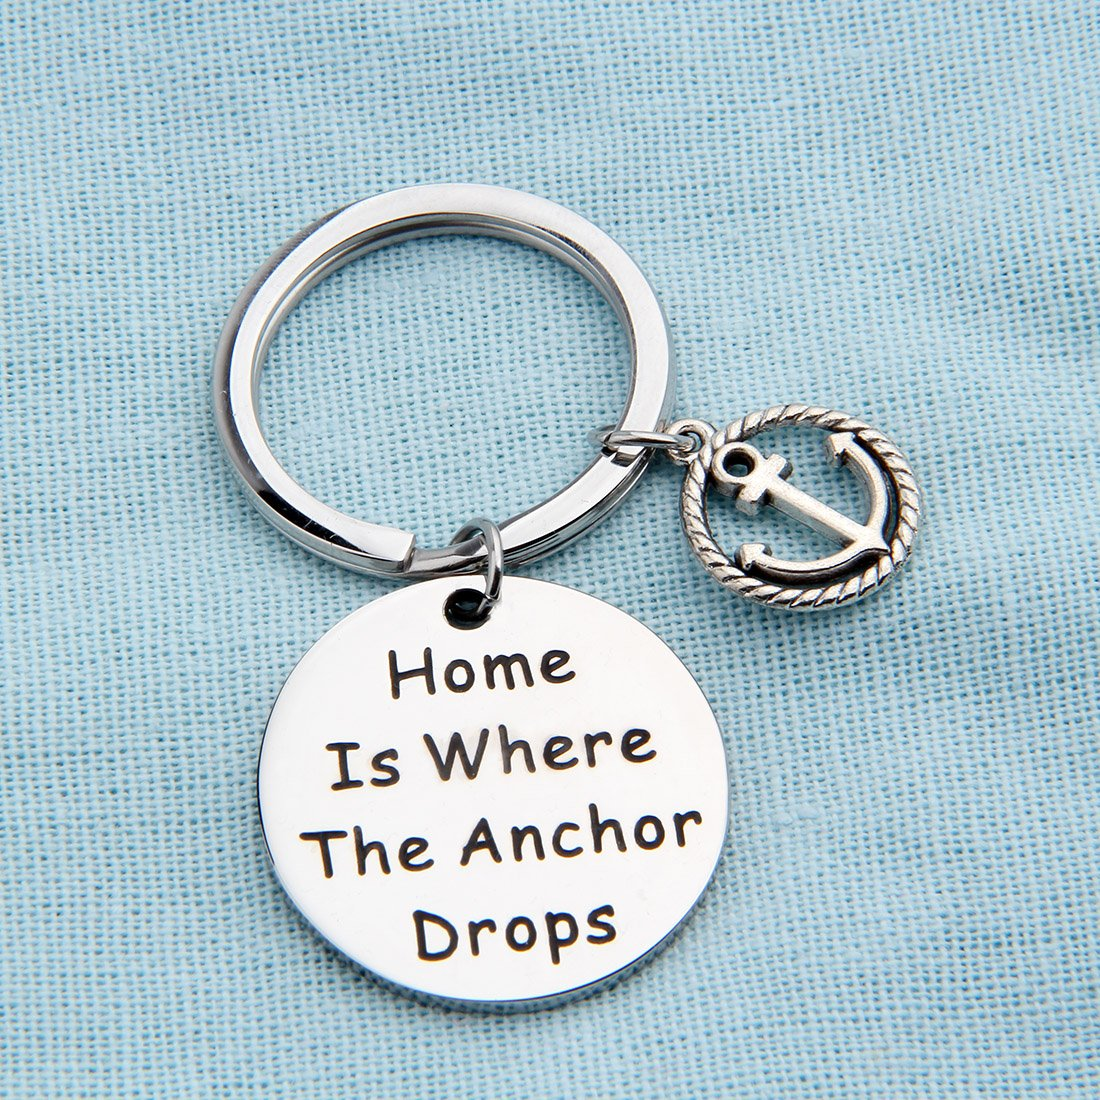 Zuo Bao Nautical Jewelry Anchor Keychain Home Is Where The Anchor Drops Ocean Jewelry Gifts (Keychain) by Zuo Bao (Image #3)